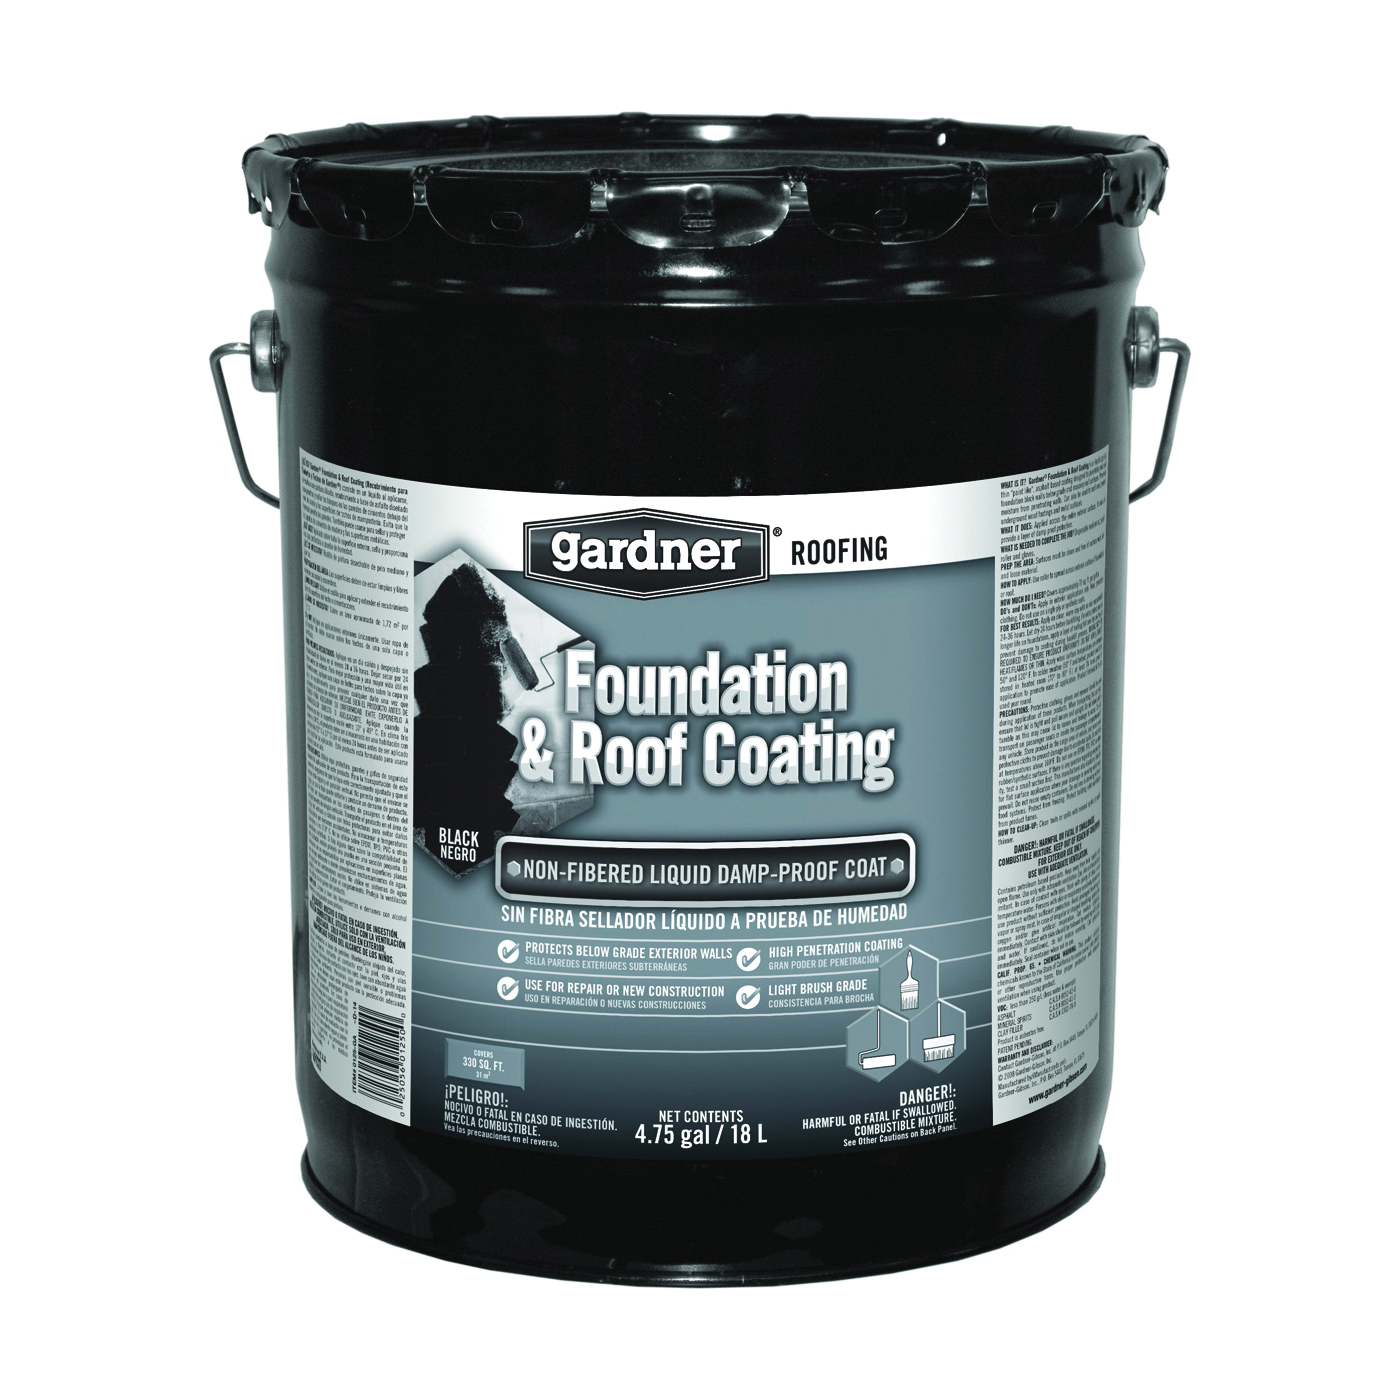 Picture of Gardner 0125-GA Foundation and Roof Coating, Black, Liquid, 5 gal Package, Pail